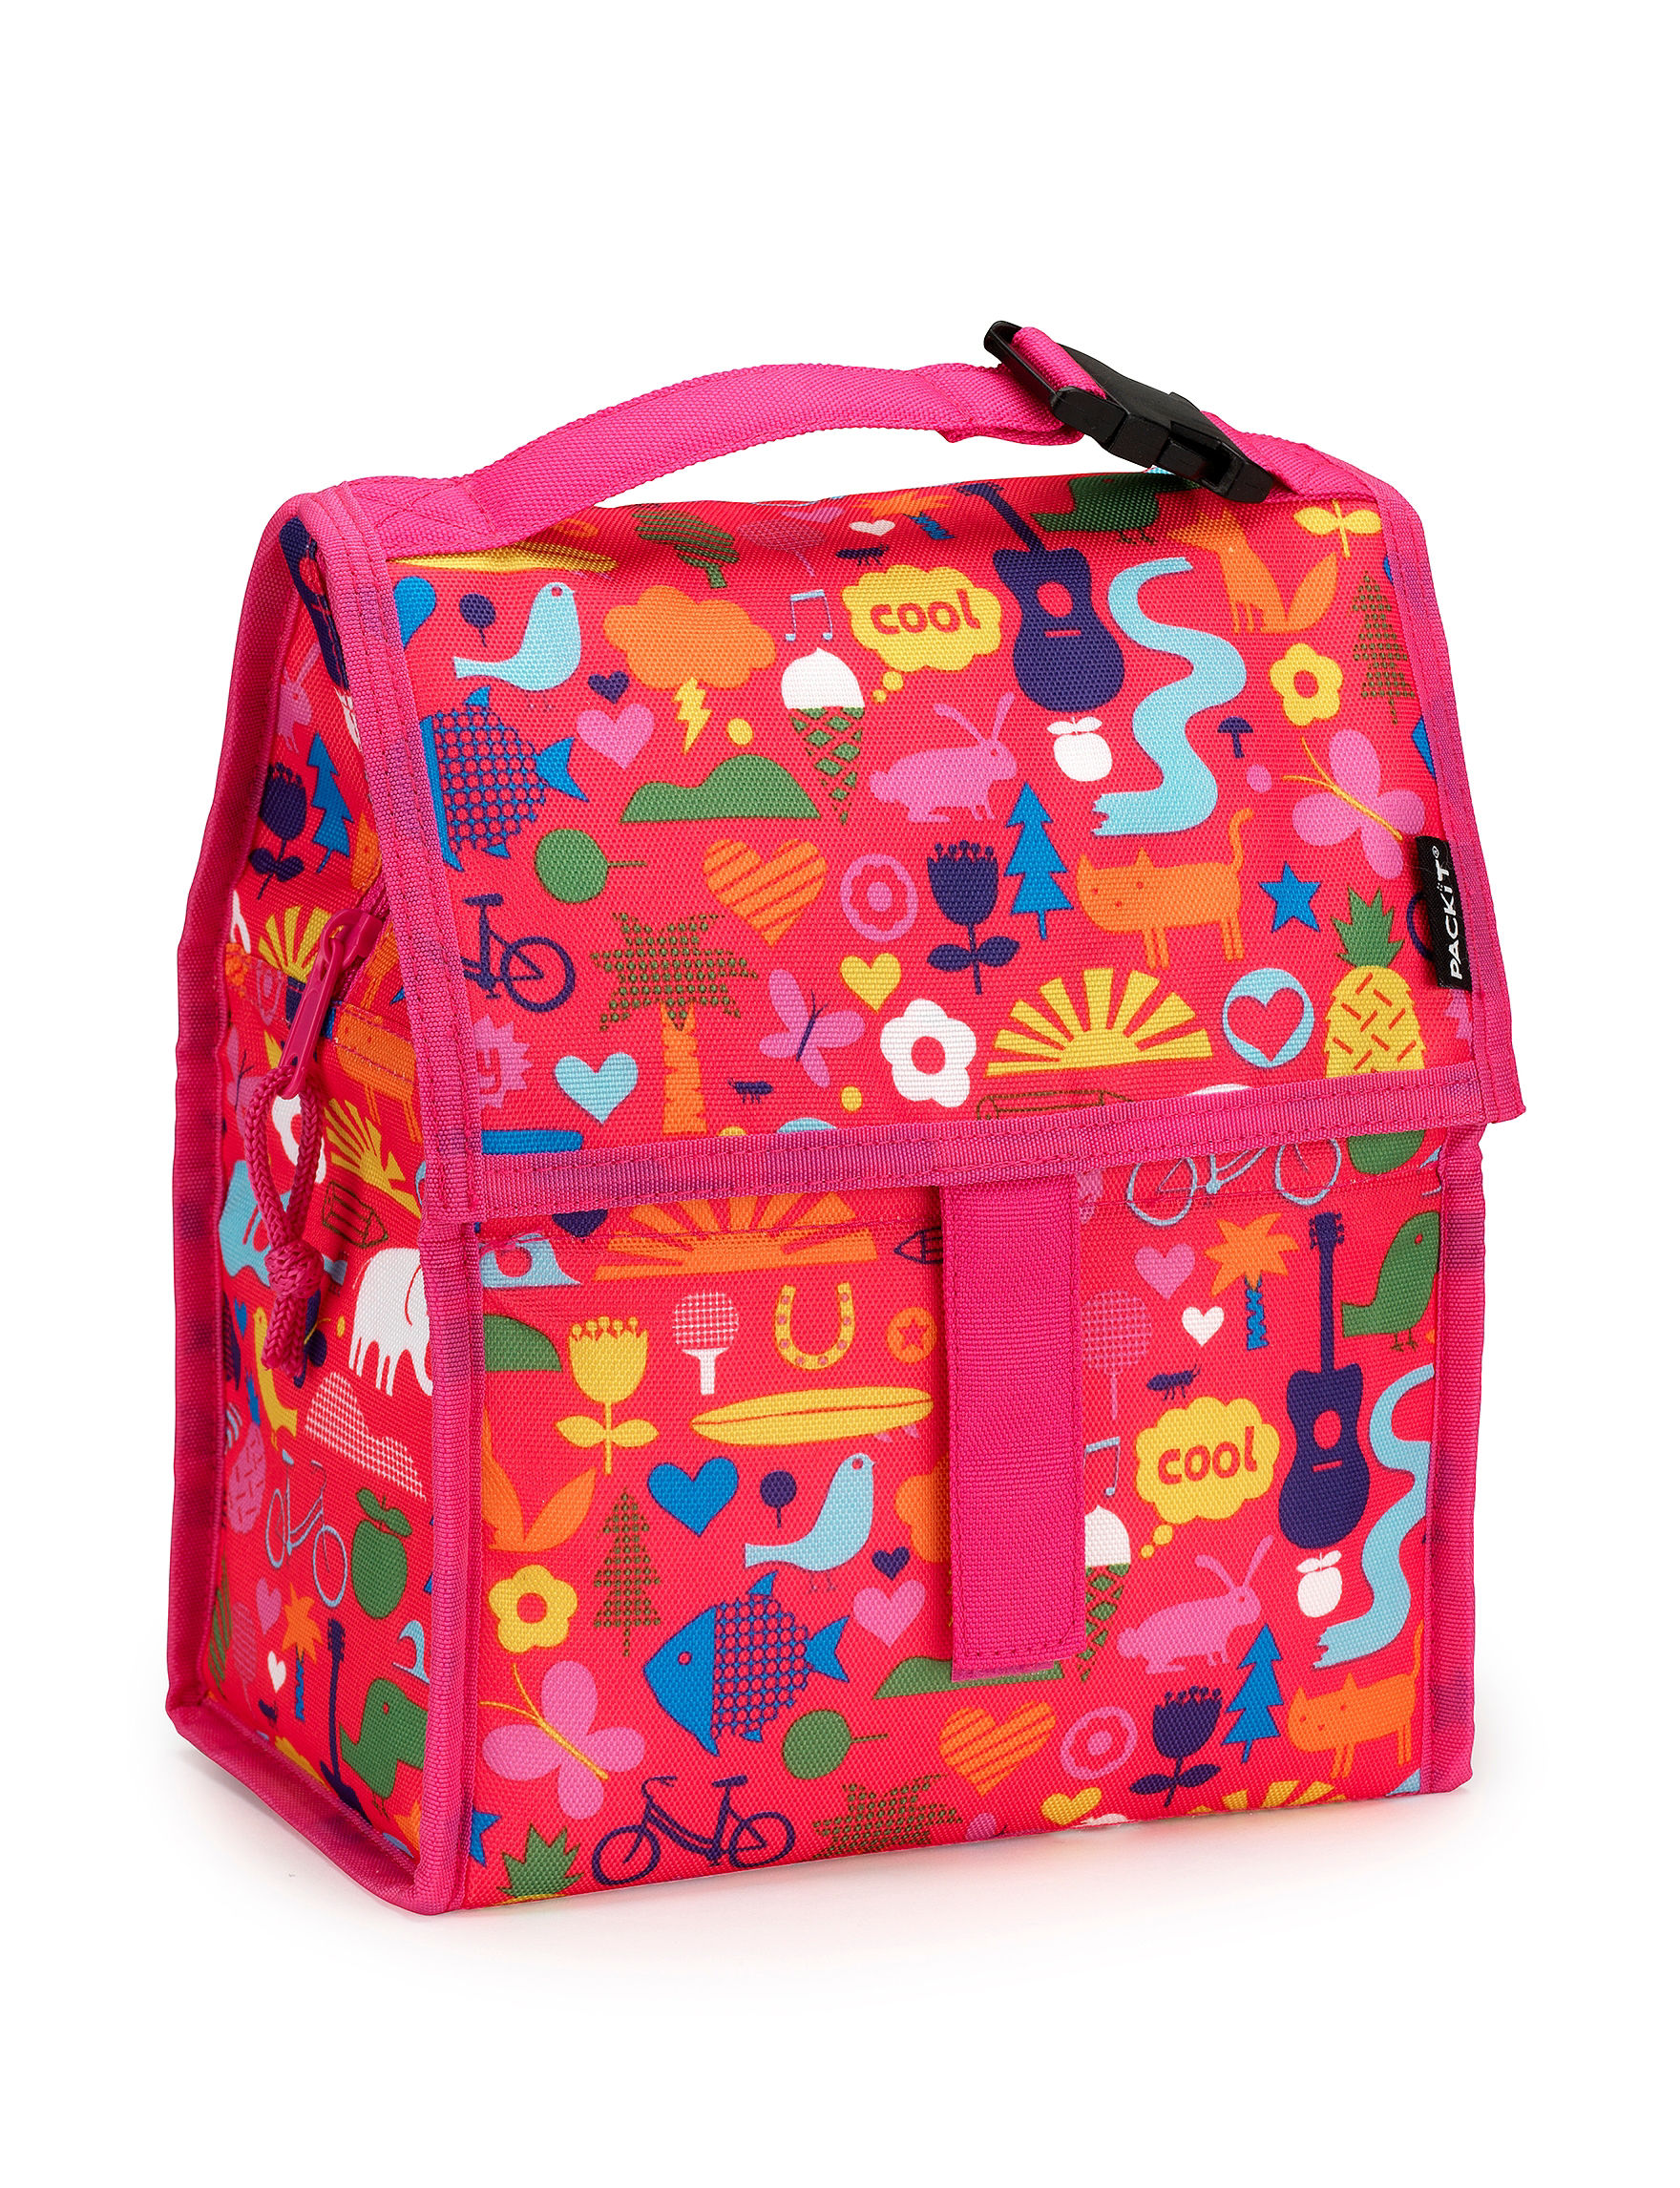 Pack It Pink Lunch Boxes & Bags Kitchen Storage & Organization